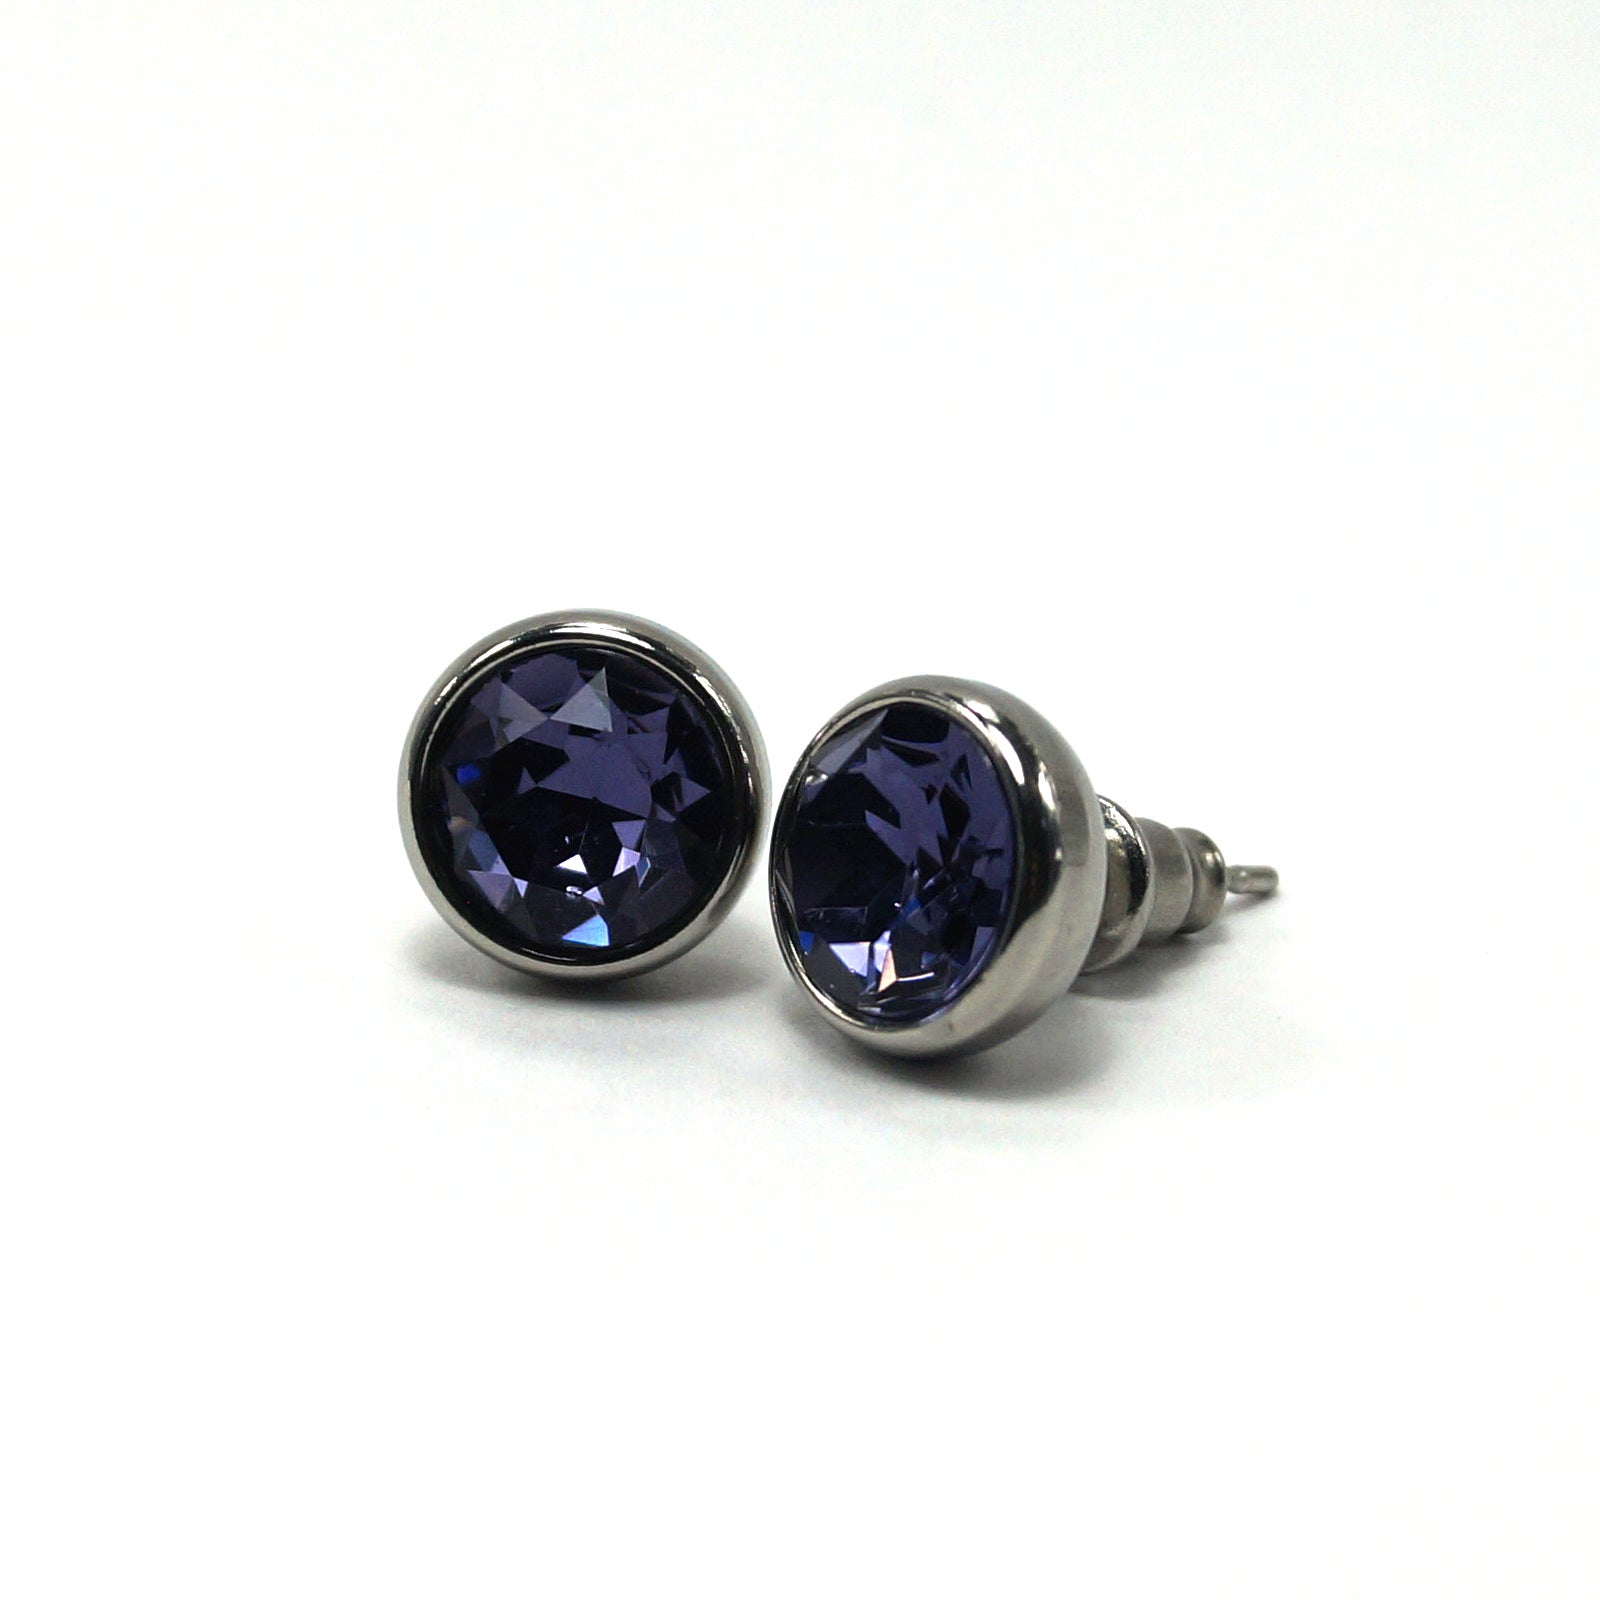 Sapphire Birthstone Stud Earrings (10mm)